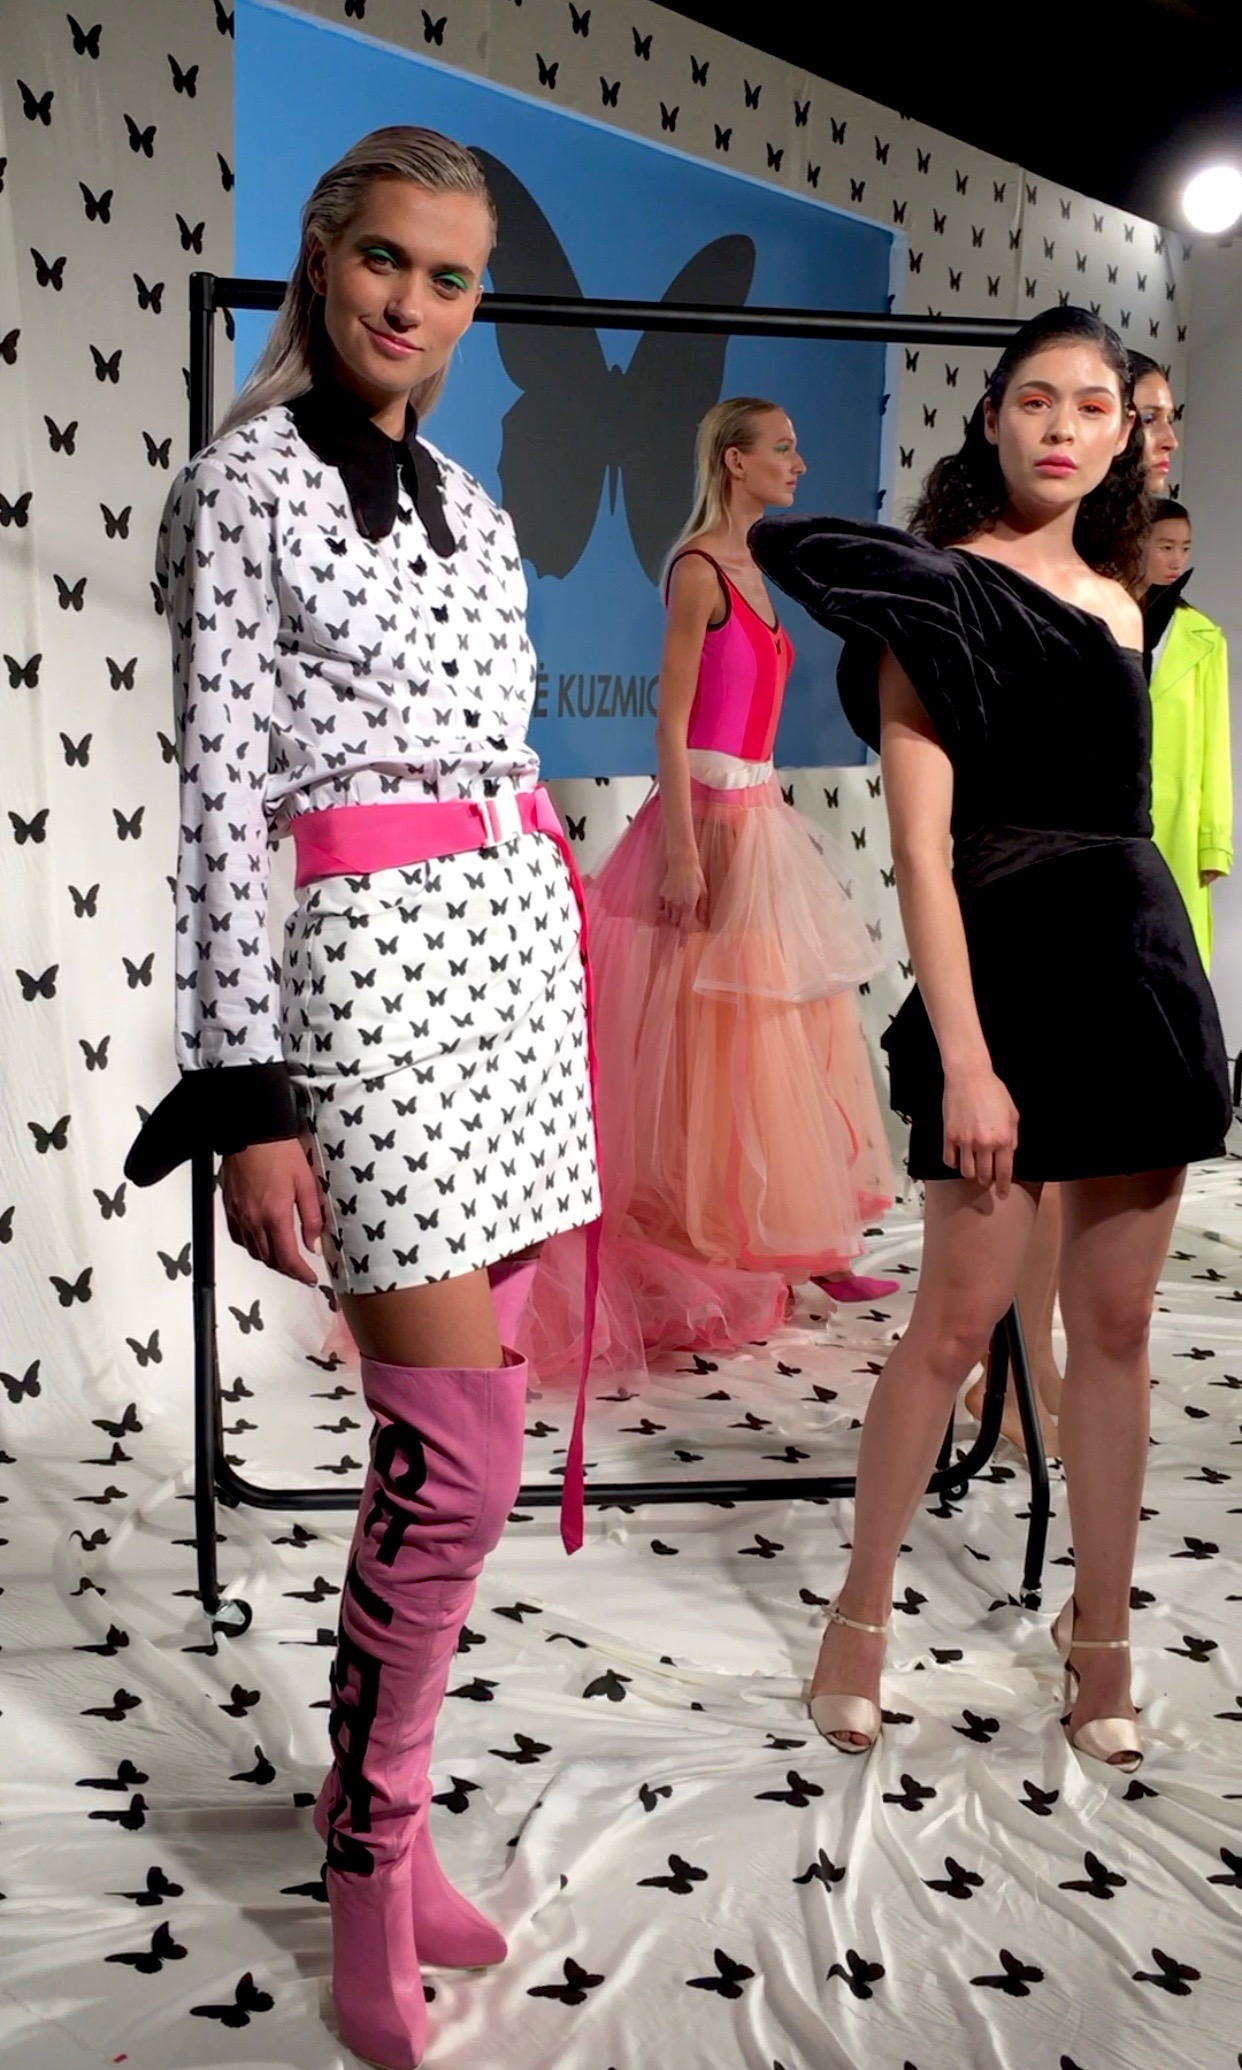 "agne kuzimickaite - Neon pops in shades of fluoro-pink and -yellow lifted this broadly black and white collection and added a fun, 80s aesthetic that was echoed in the a-symmetric and strapless LBDs.Logo-love is clearly going strong into SS19. And the ""Where's Waldo"" game was just an added bonus!"